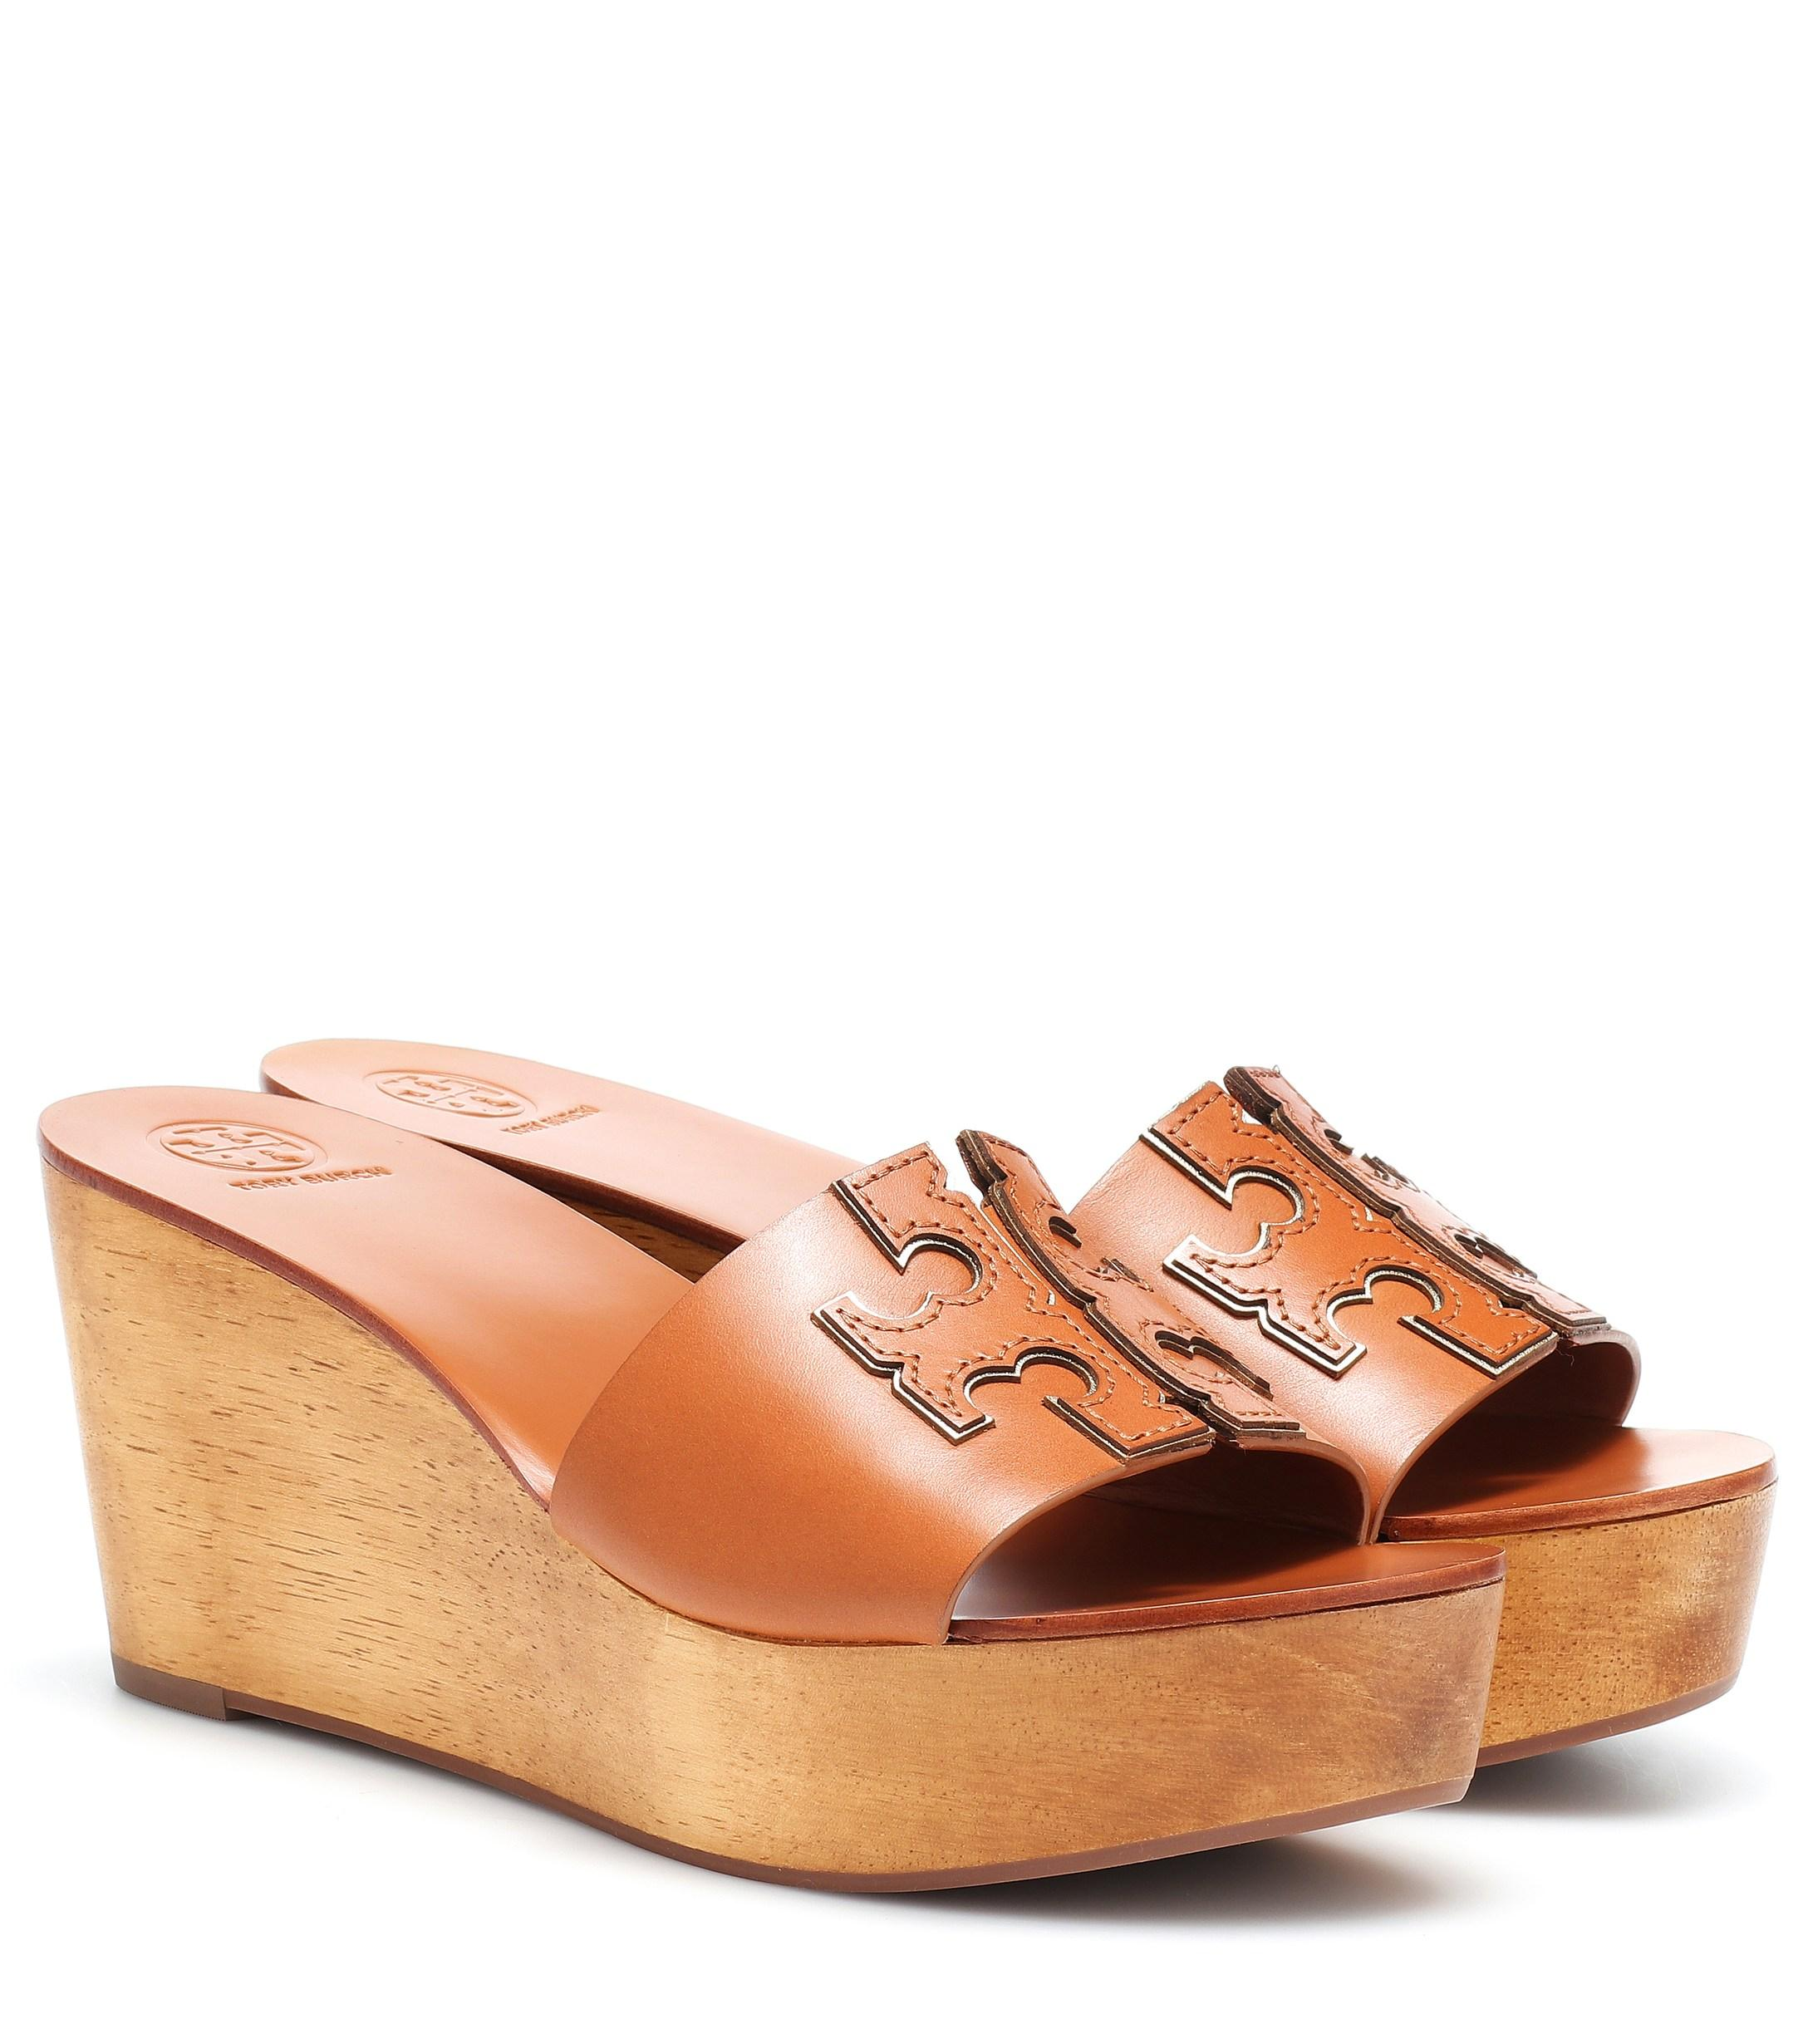 0f09cac22 Lyst - Tory Burch Ines 80mm Leather Wedge Sandals in Brown